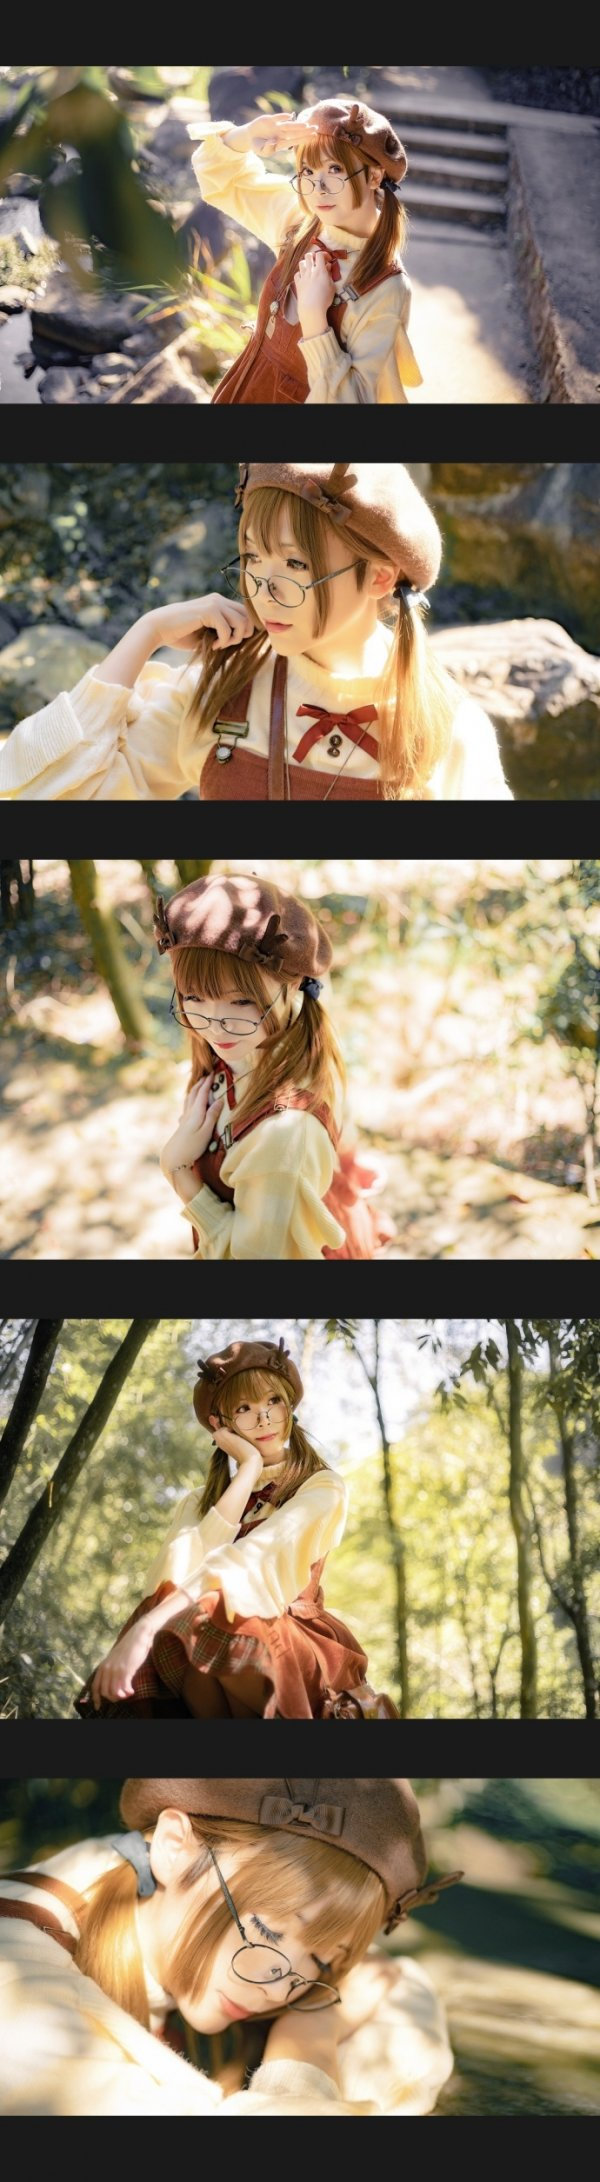 Original Cosplay by Crome Moe